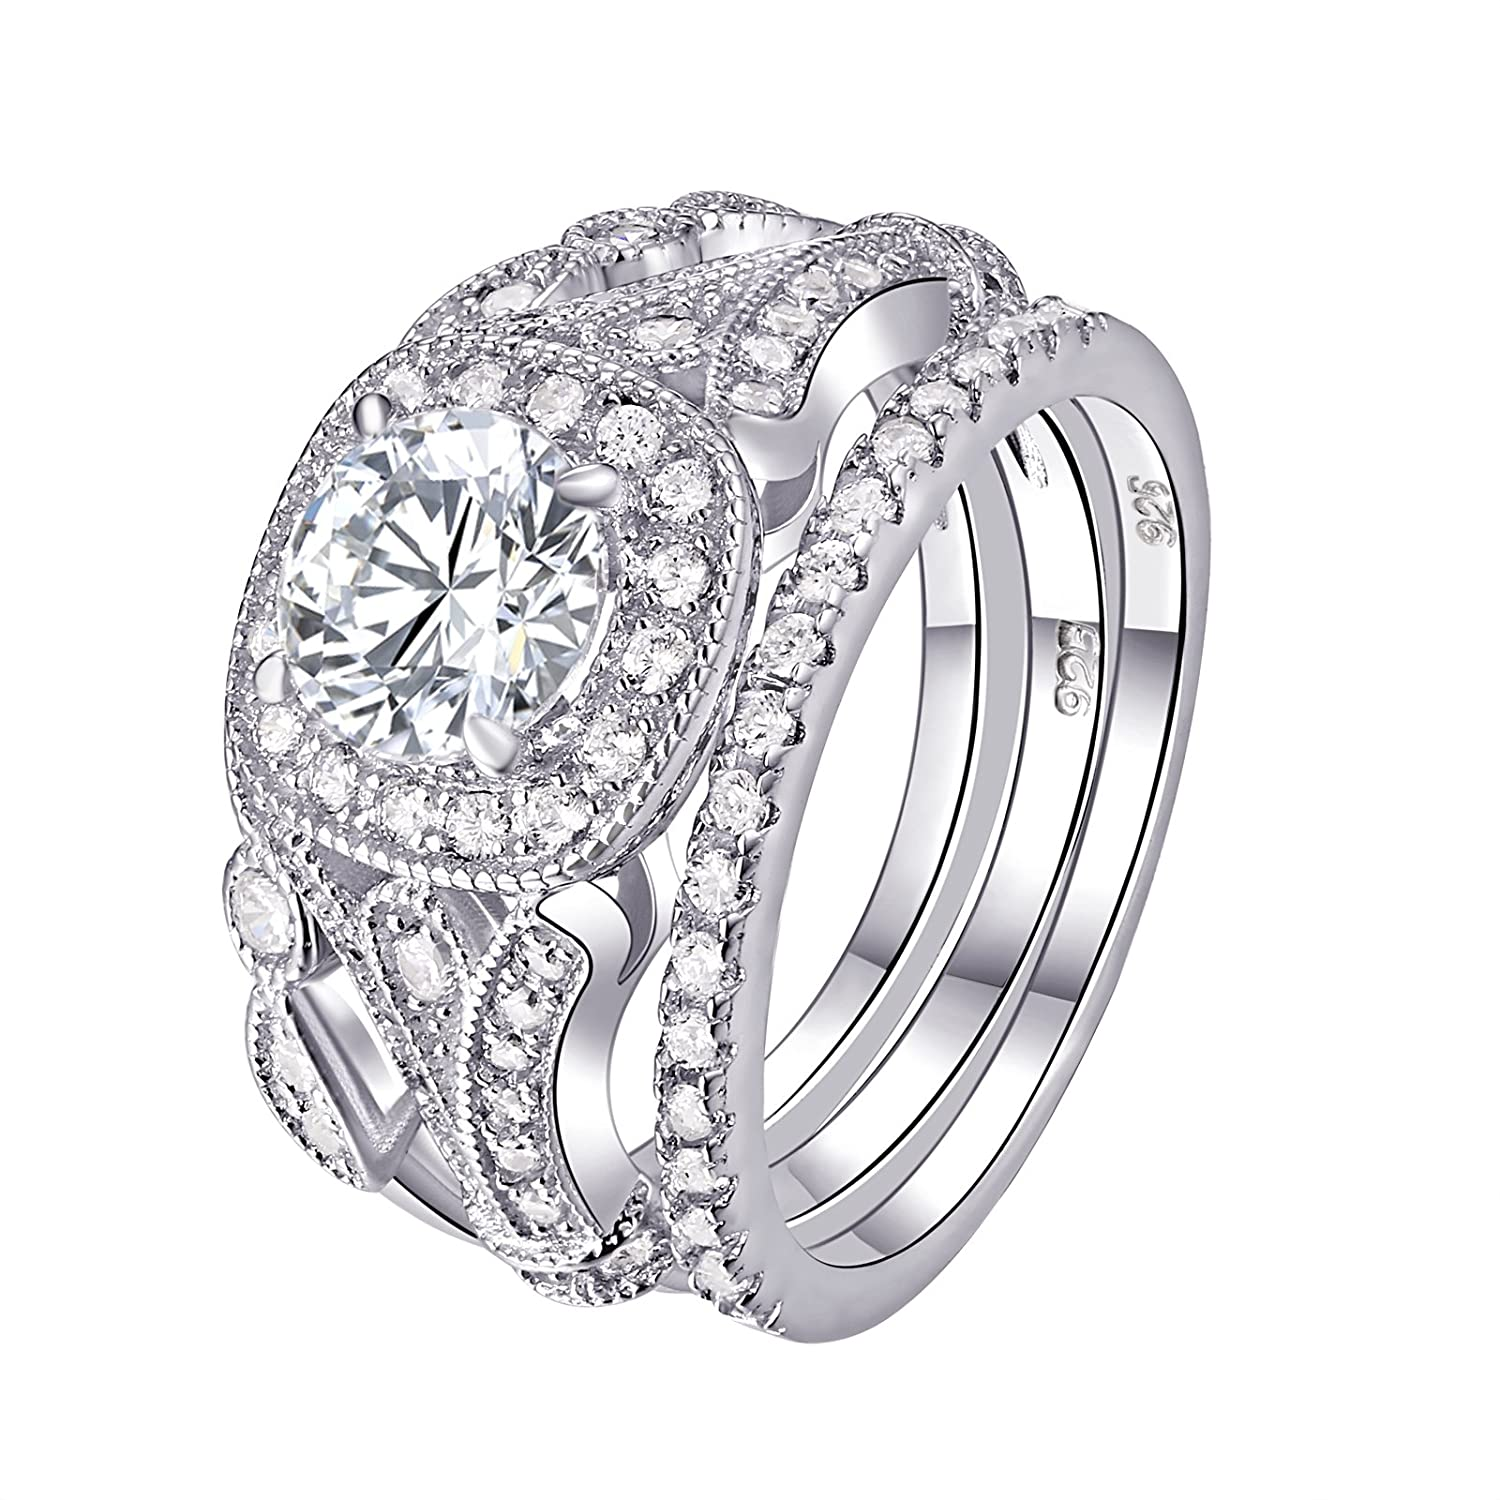 Newshe Wedding Rings for Women Engagement Set 925 Sterling Silver 2ct Round White AAA Cz Size 5-12 Newshe Jewellery JR4681_SS